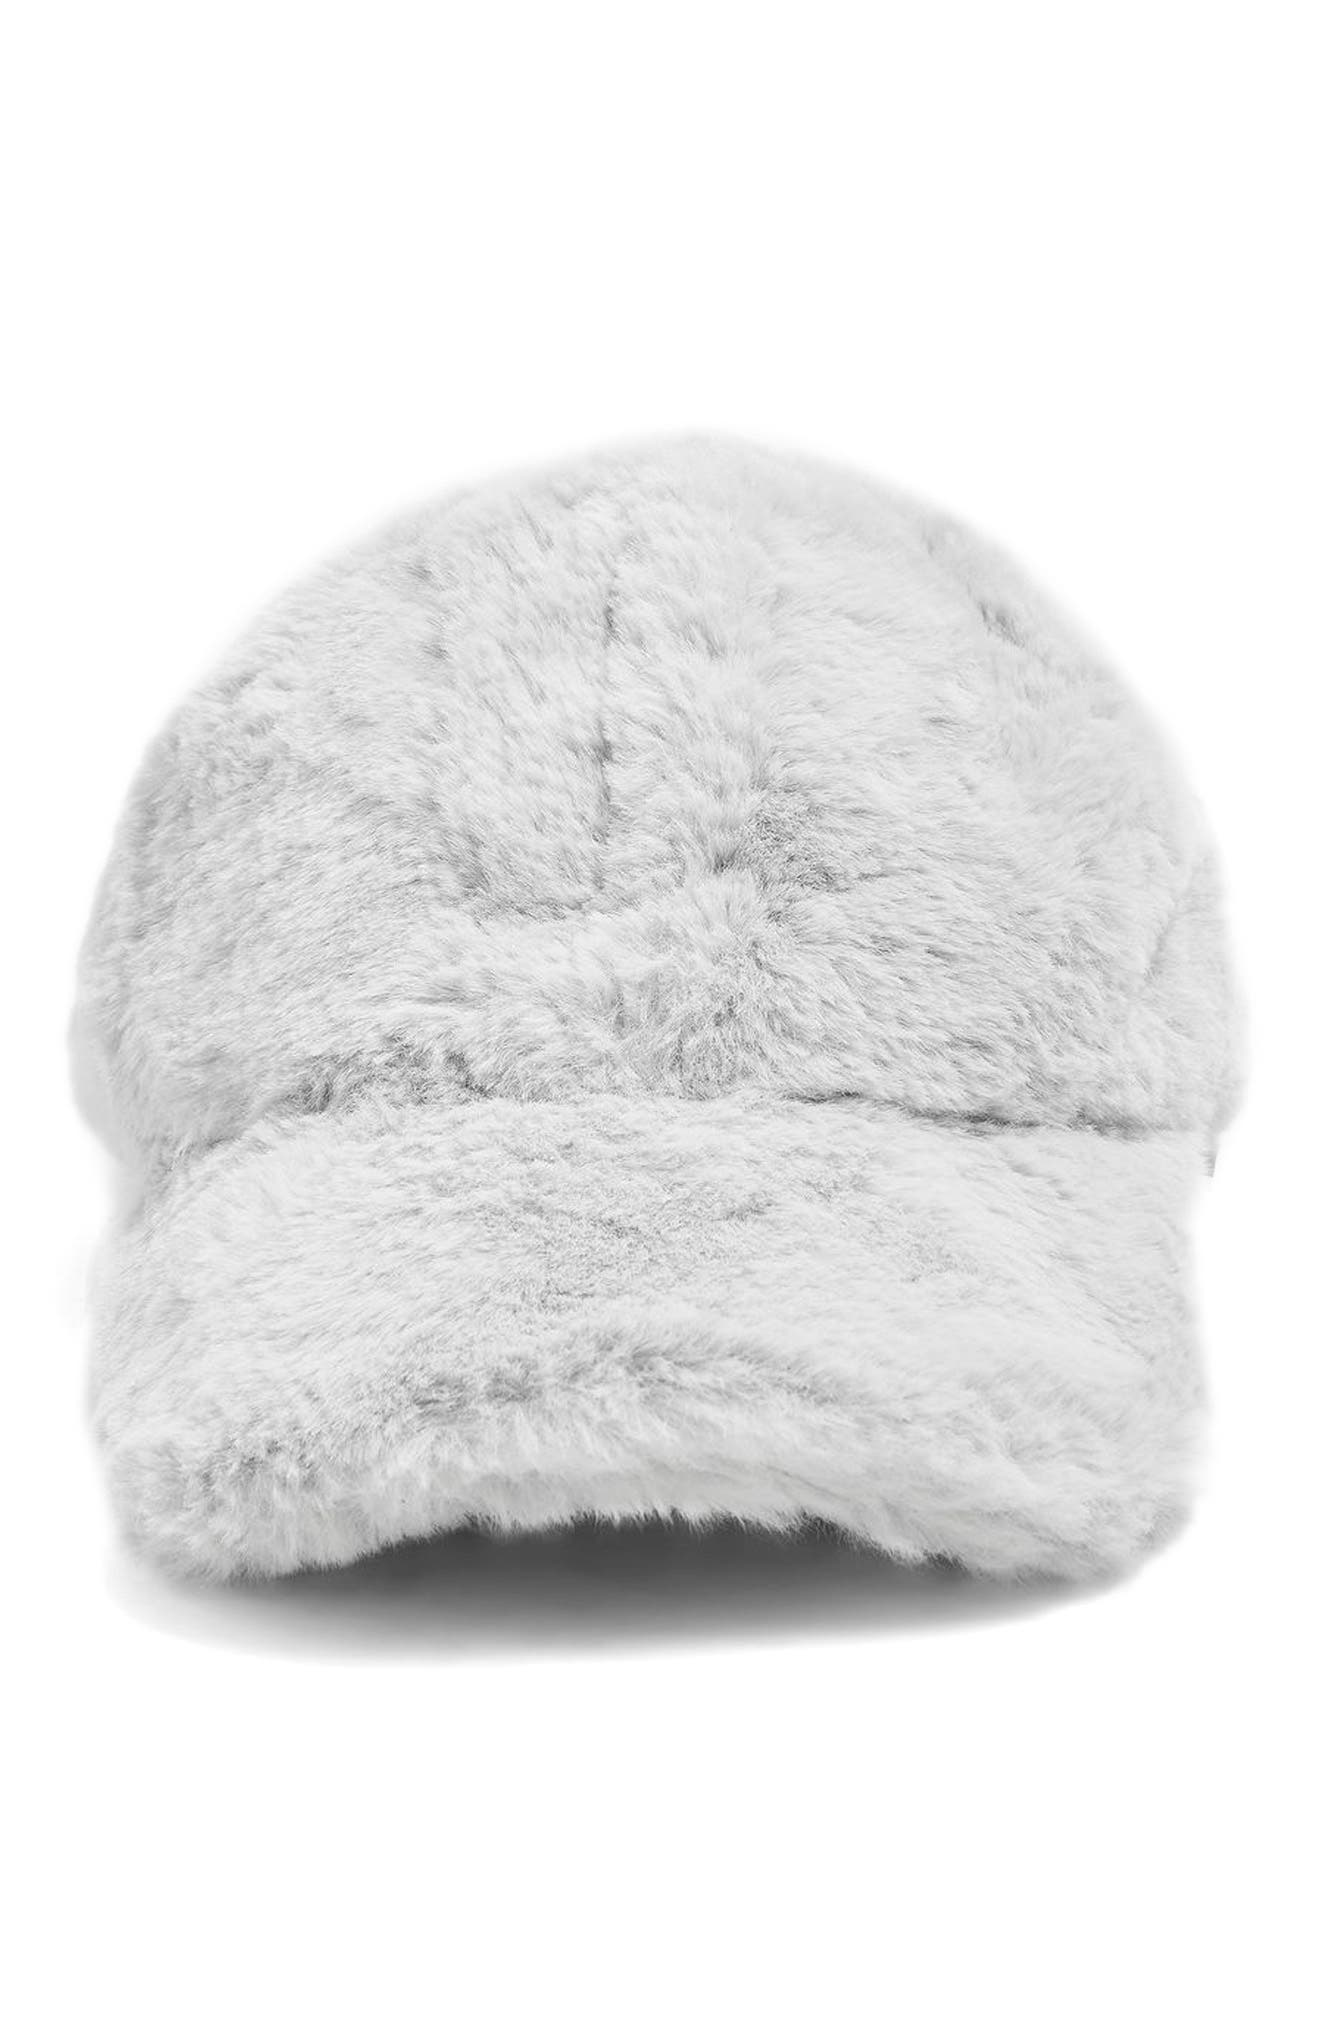 Faux Fur Baseball Cap,                             Alternate thumbnail 2, color,                             020